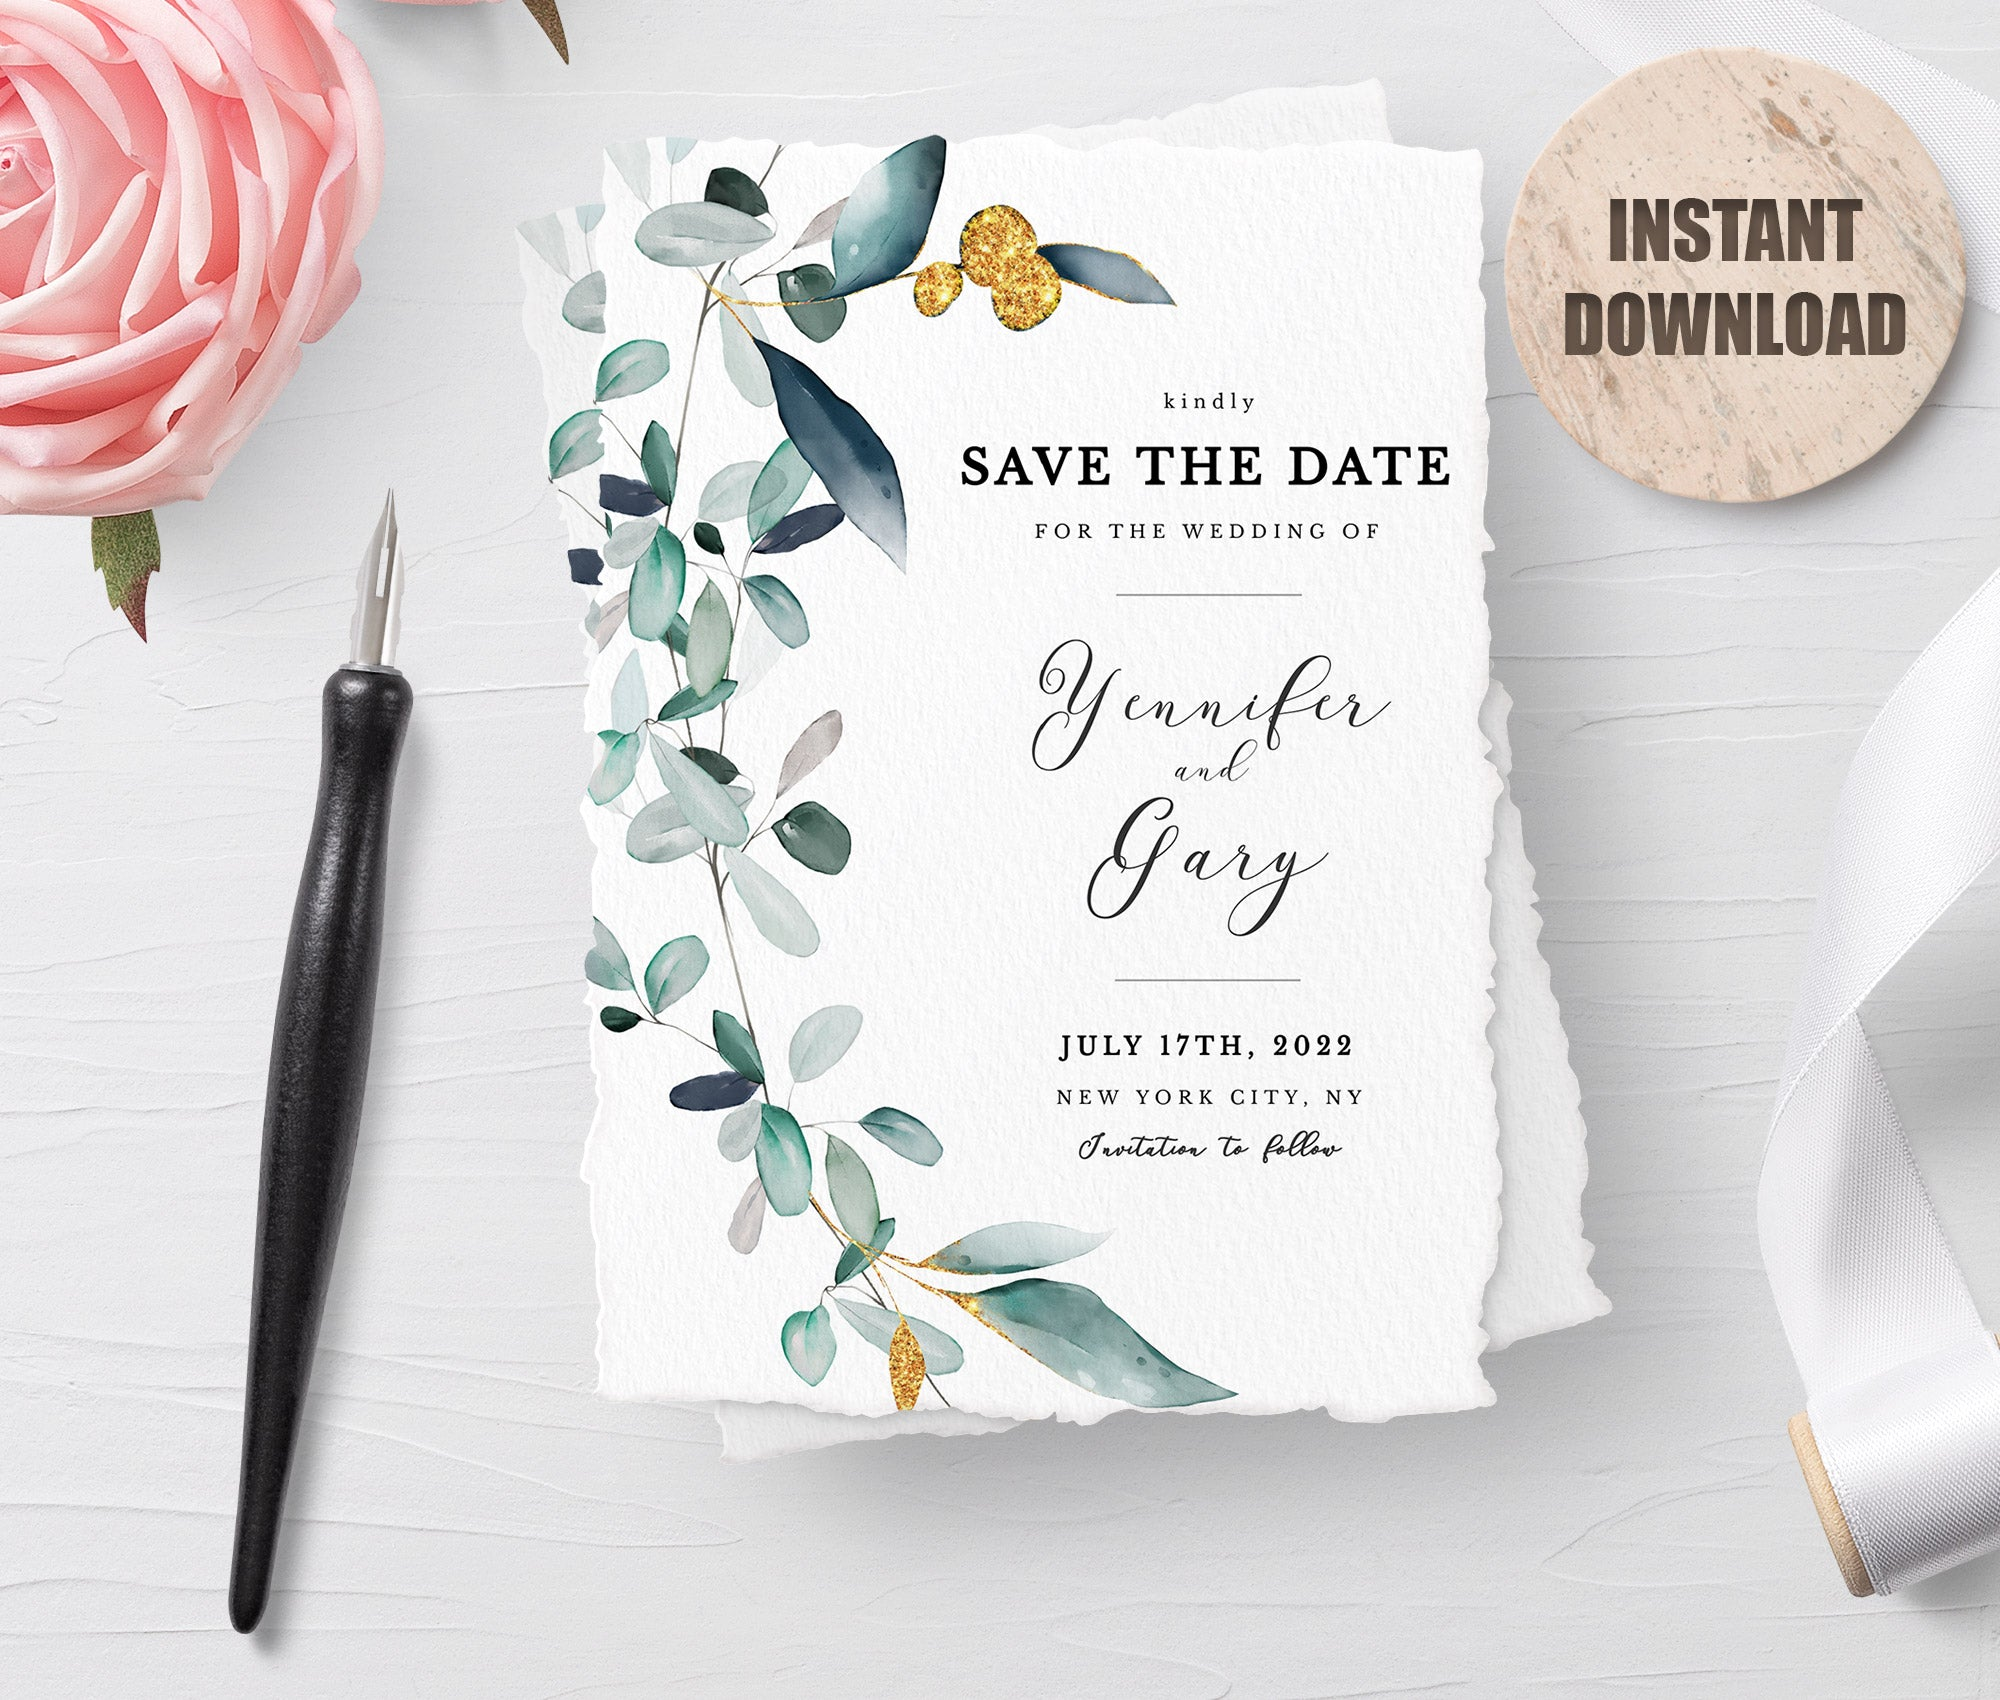 It's just a picture of Printable Save the Date regarding transparent